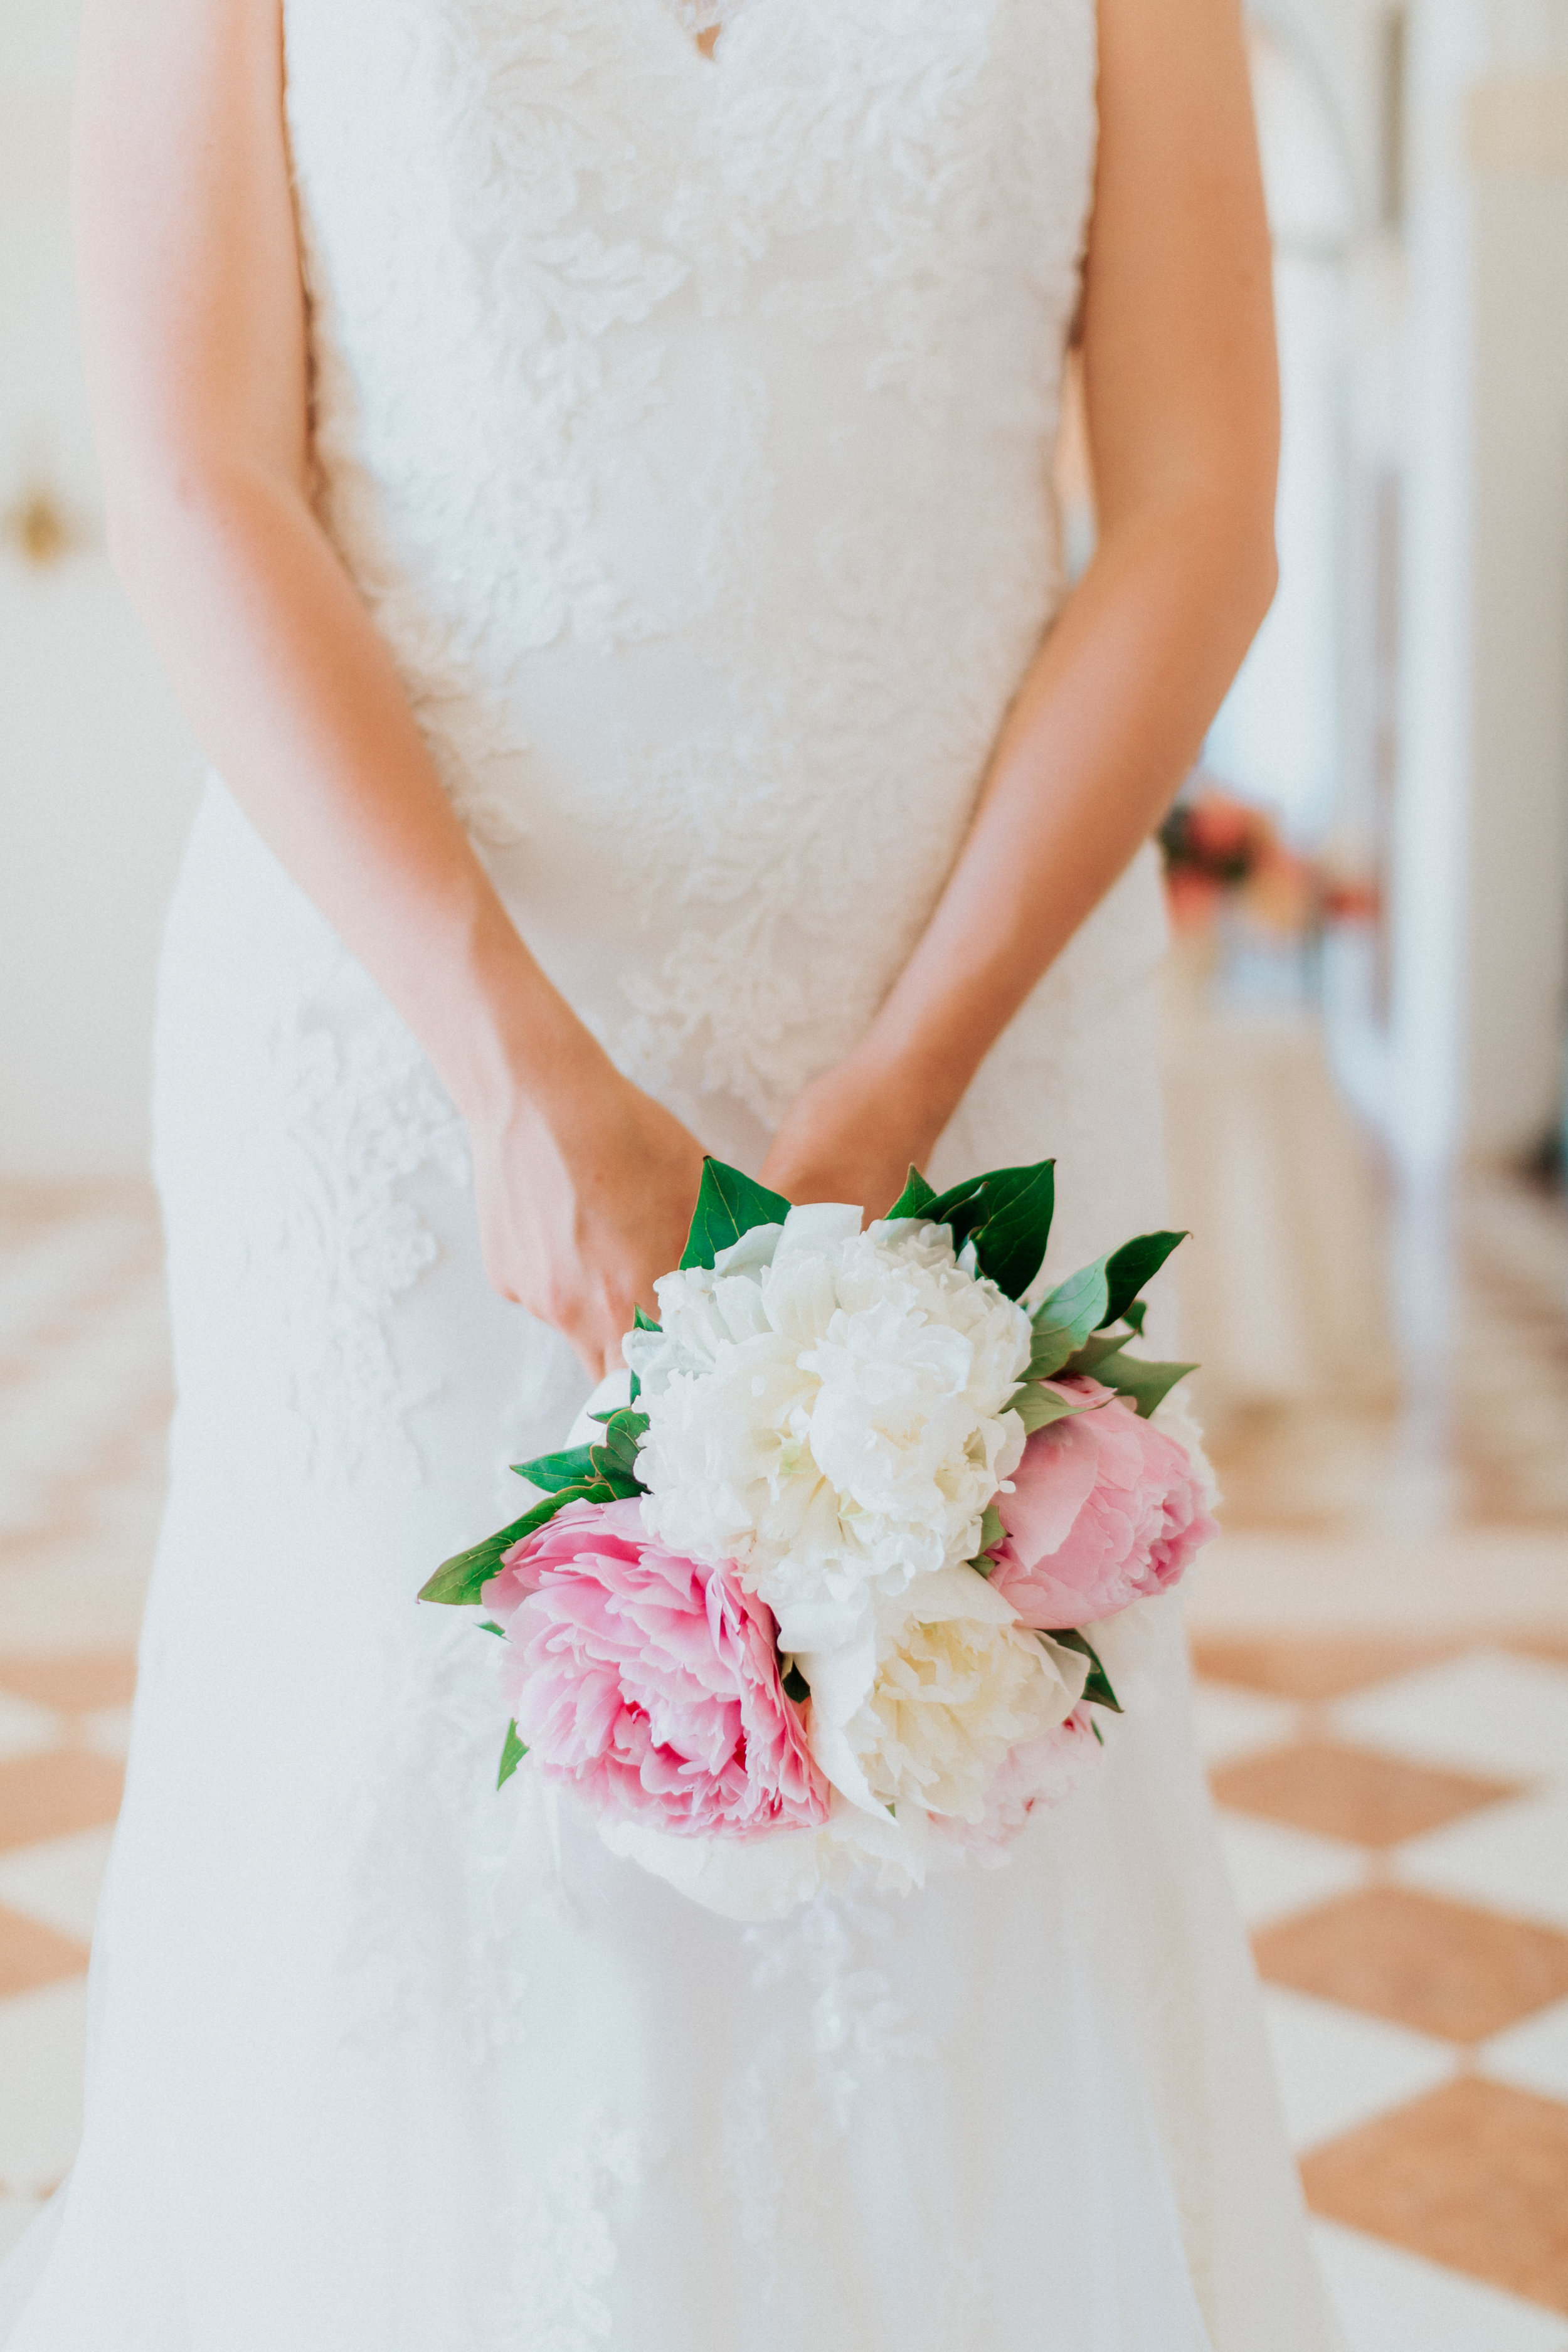 2019 Weddings available for booking - 2019 Wedding Collection